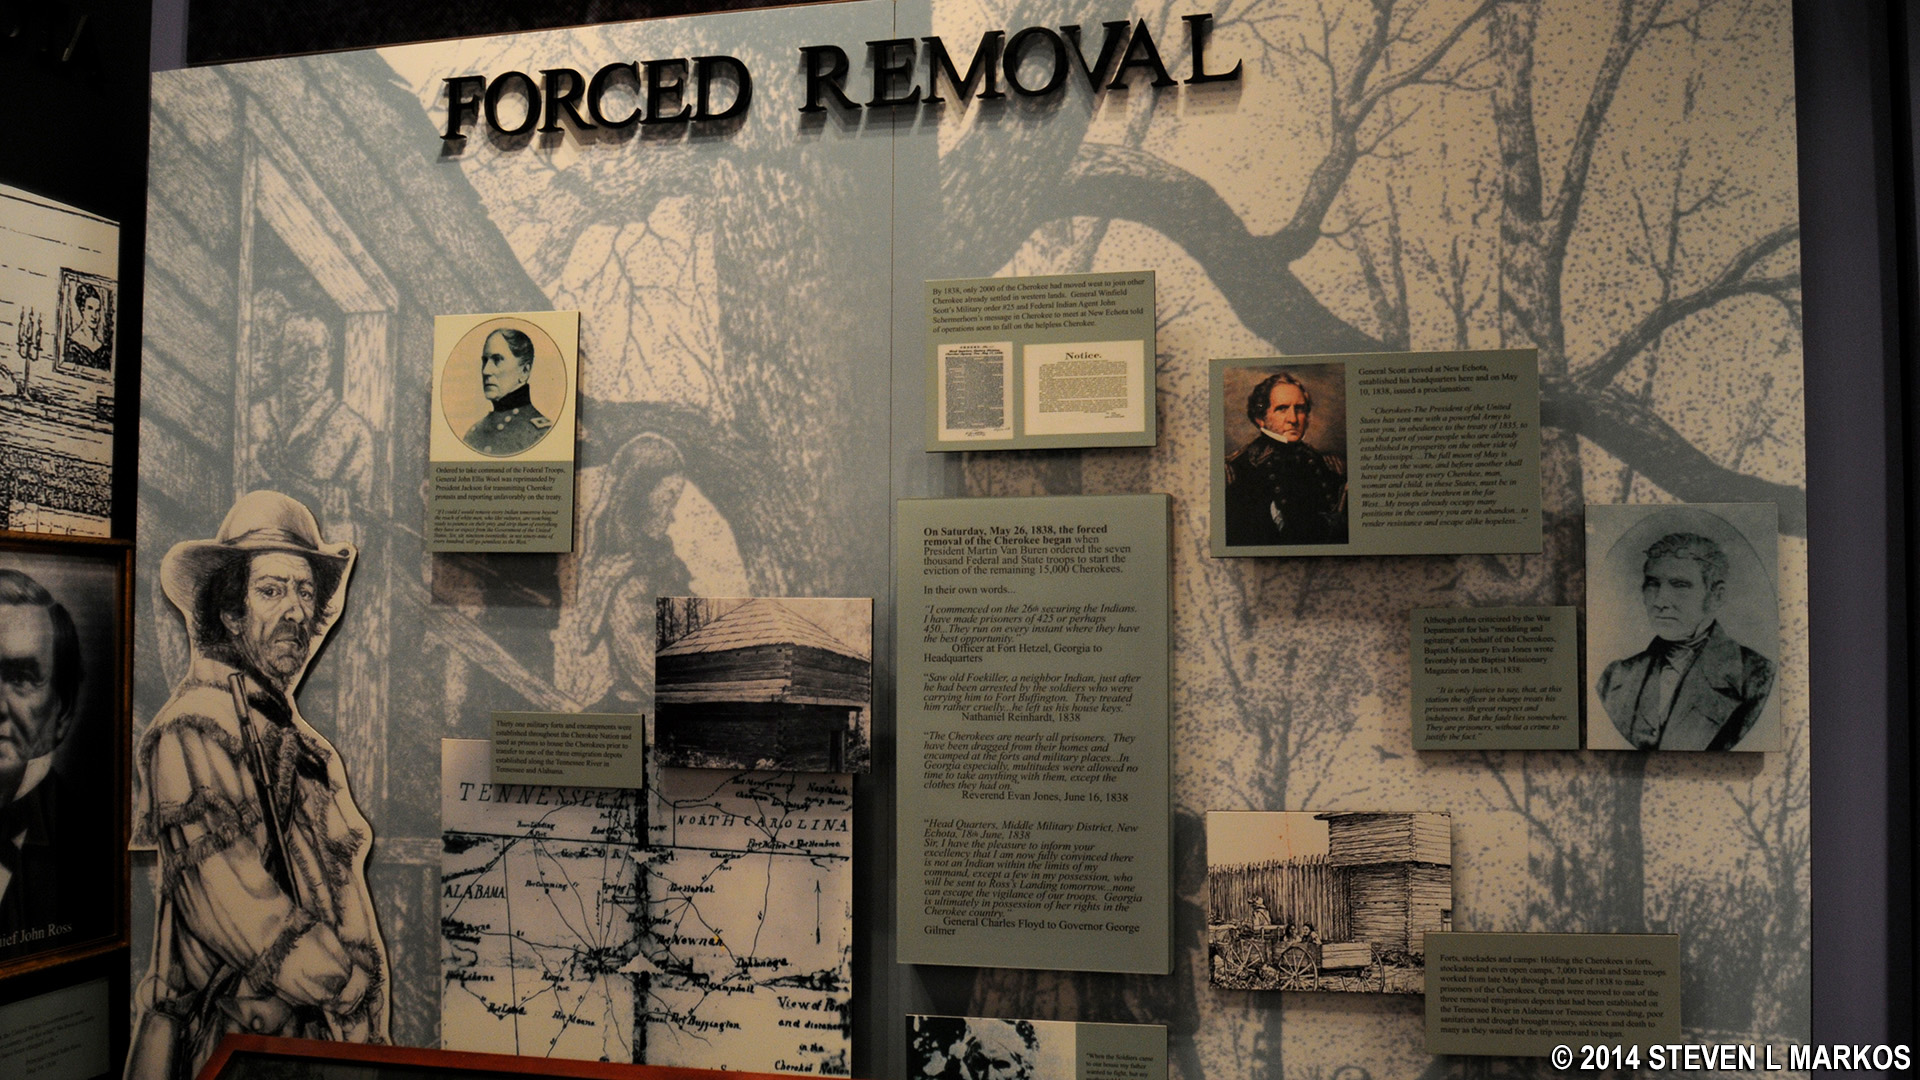 Trail of Tears National Historical Trail   HISTORY OF THE